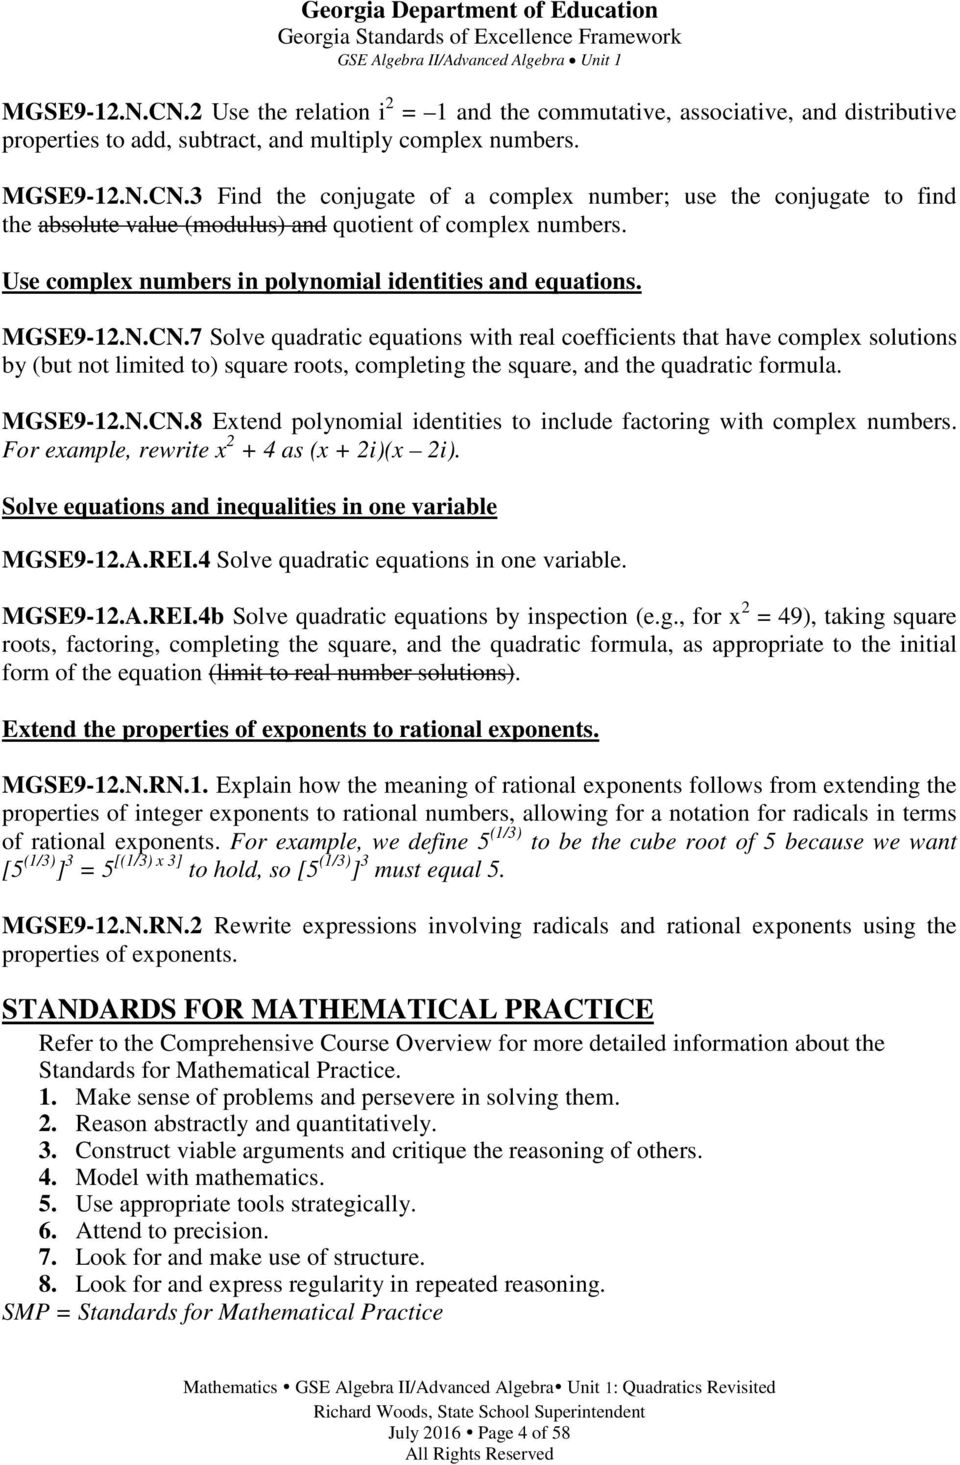 Georgia standards of excellence curriculum frameworks mathematics 7 solve quadratic equations with real coefficients that have complex solutions by but not limited fandeluxe Choice Image